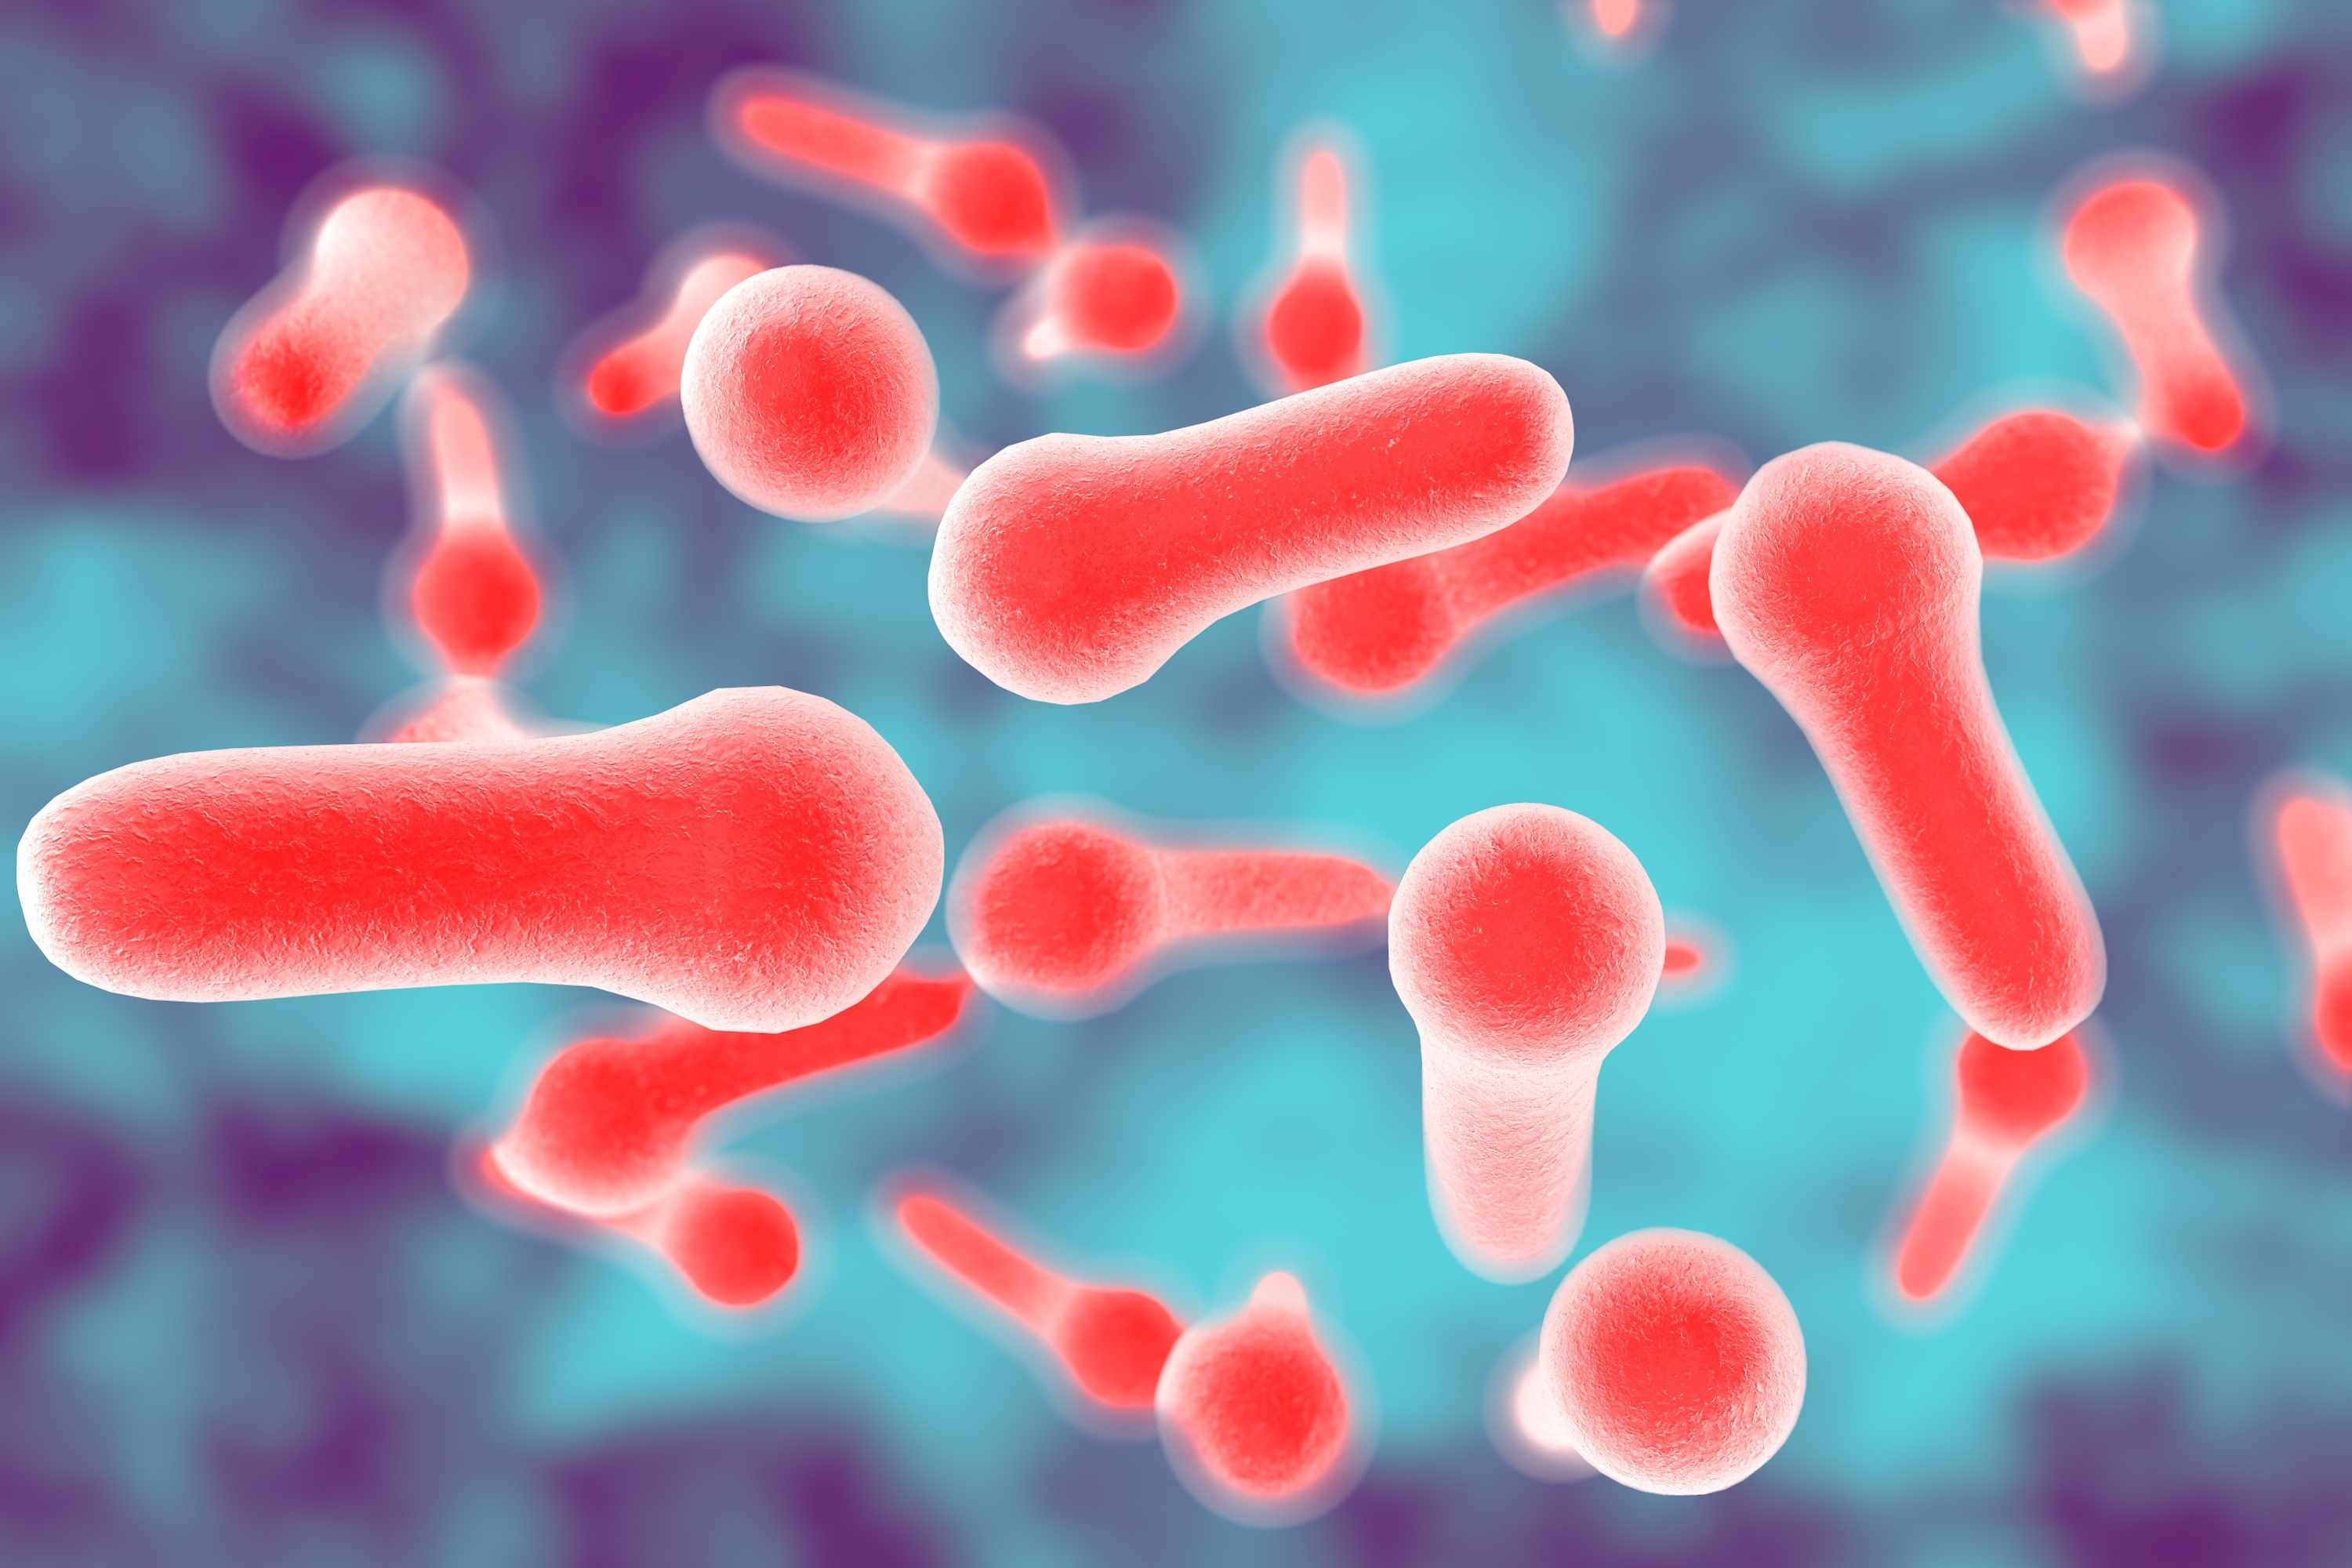 botulism is caused by bacteria toxins mayo clinic news network